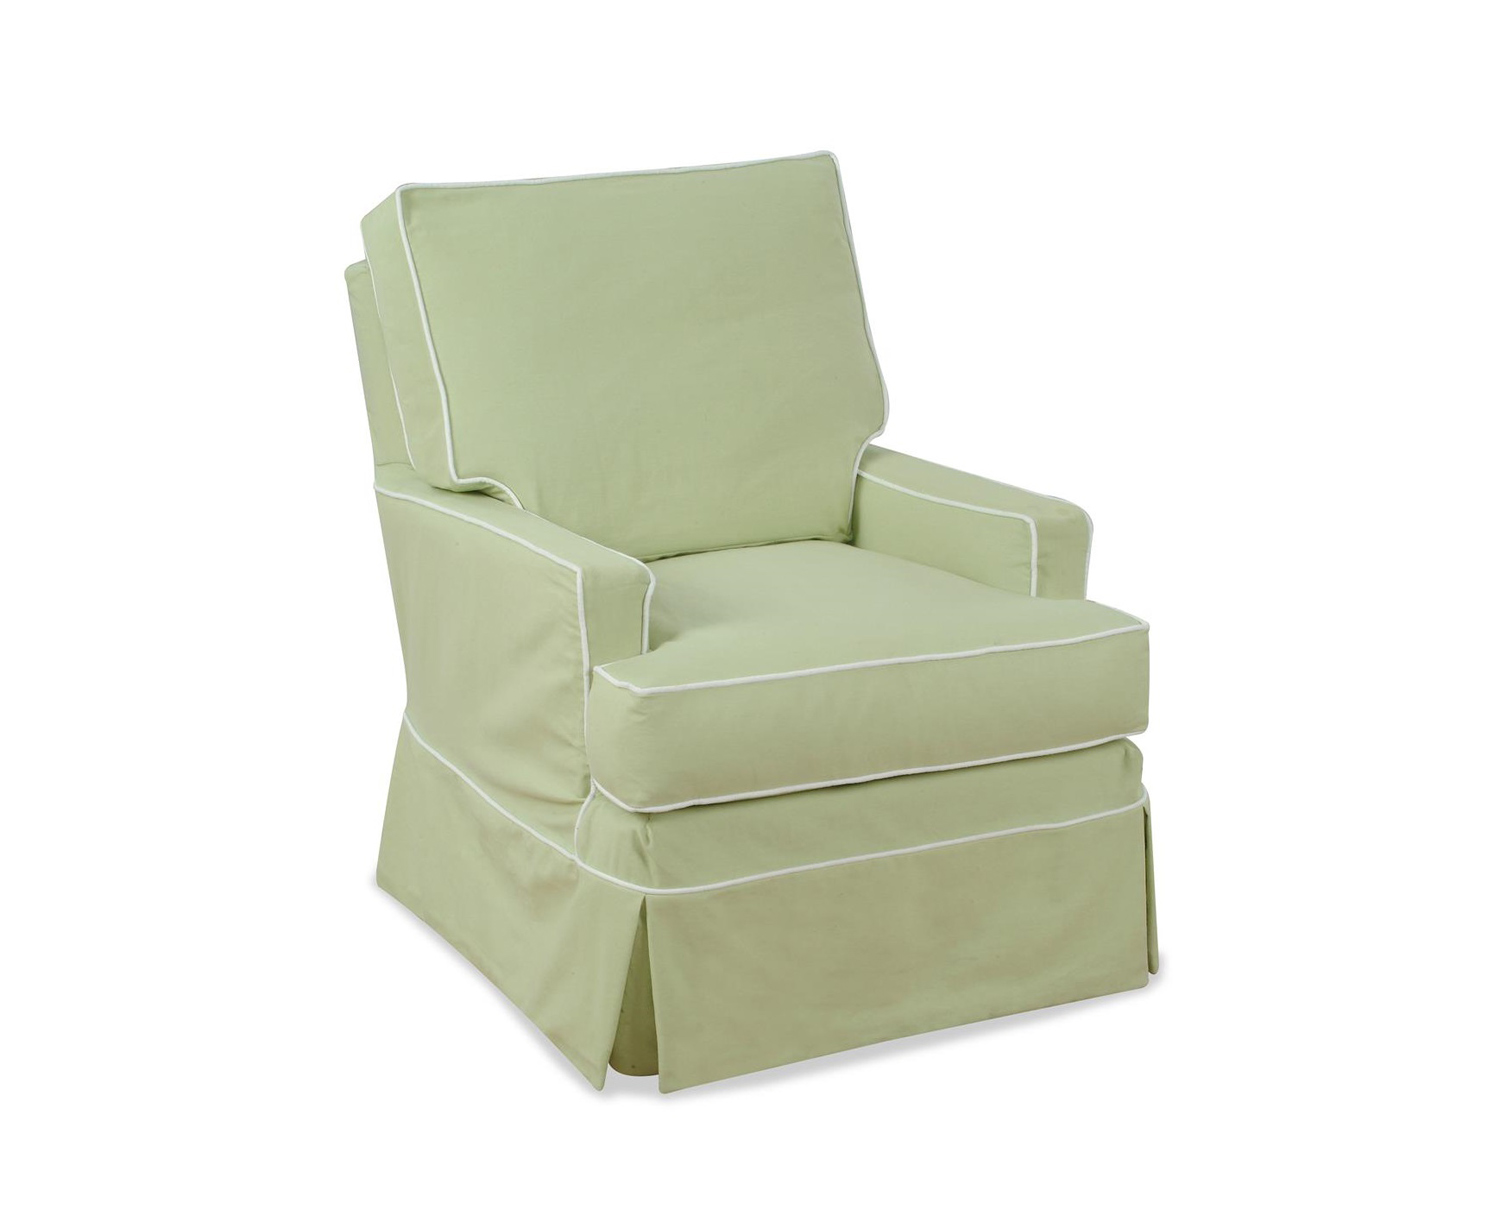 Chelsea Home Camila Accent Glider - Topsider Celadon